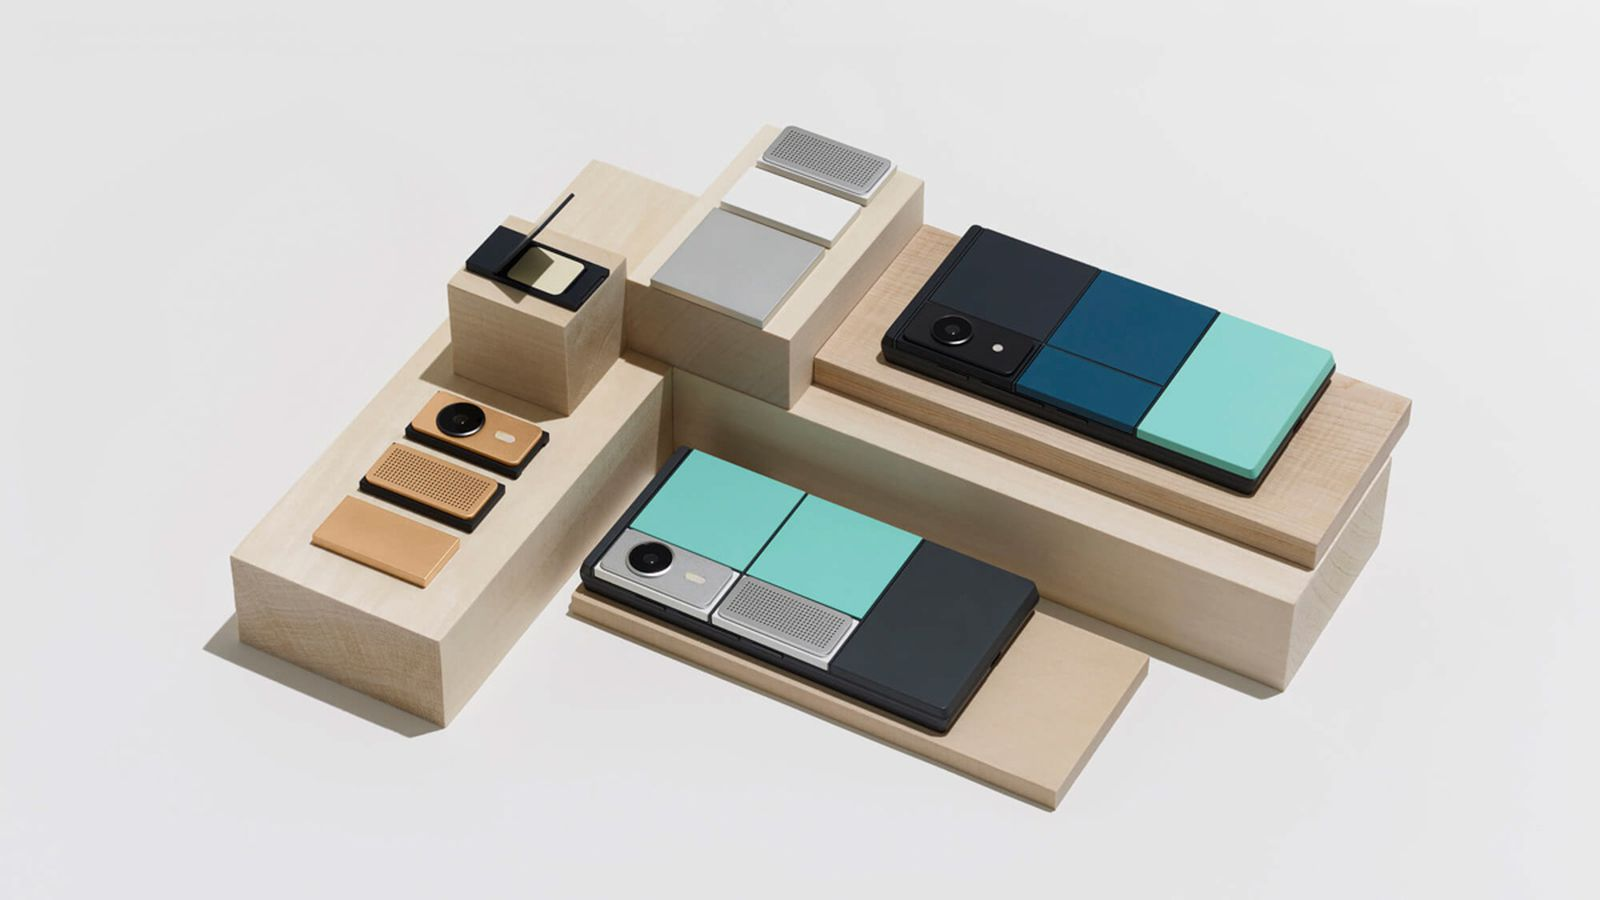 Google confirms the end of its modular Project Ara smartphone - The Verge